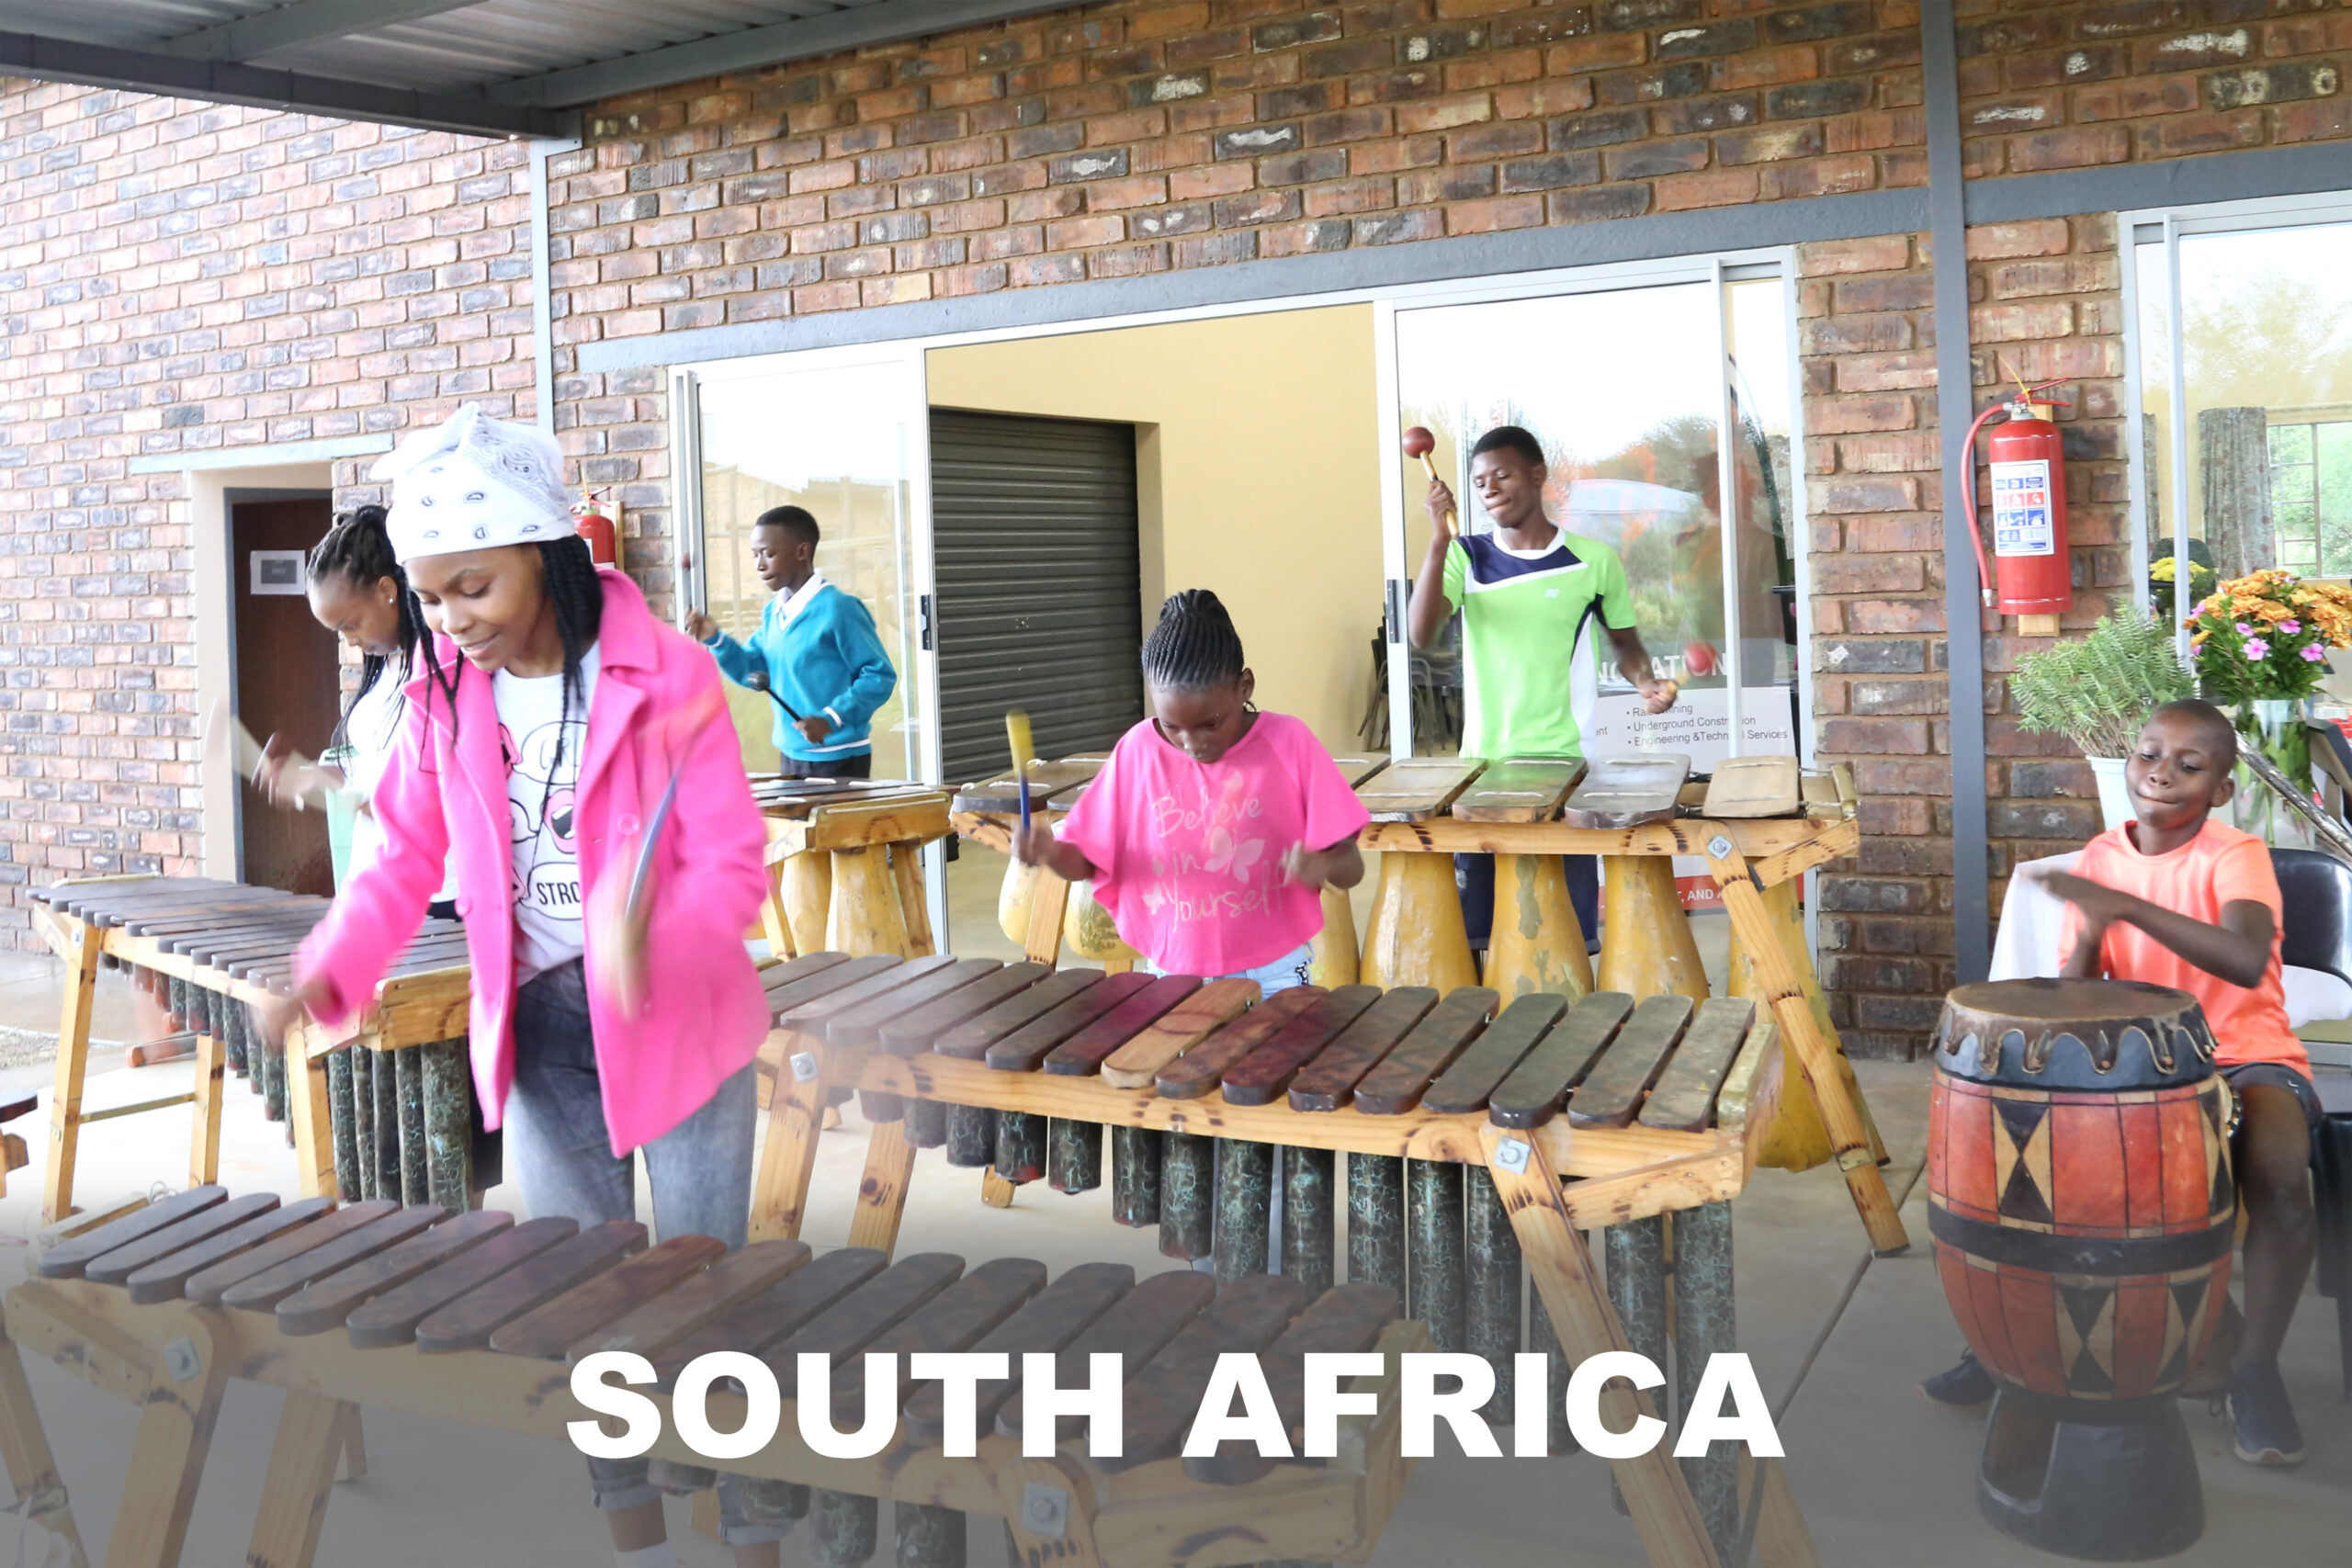 A group of community members perform a musical number during the Thabang outreach effort